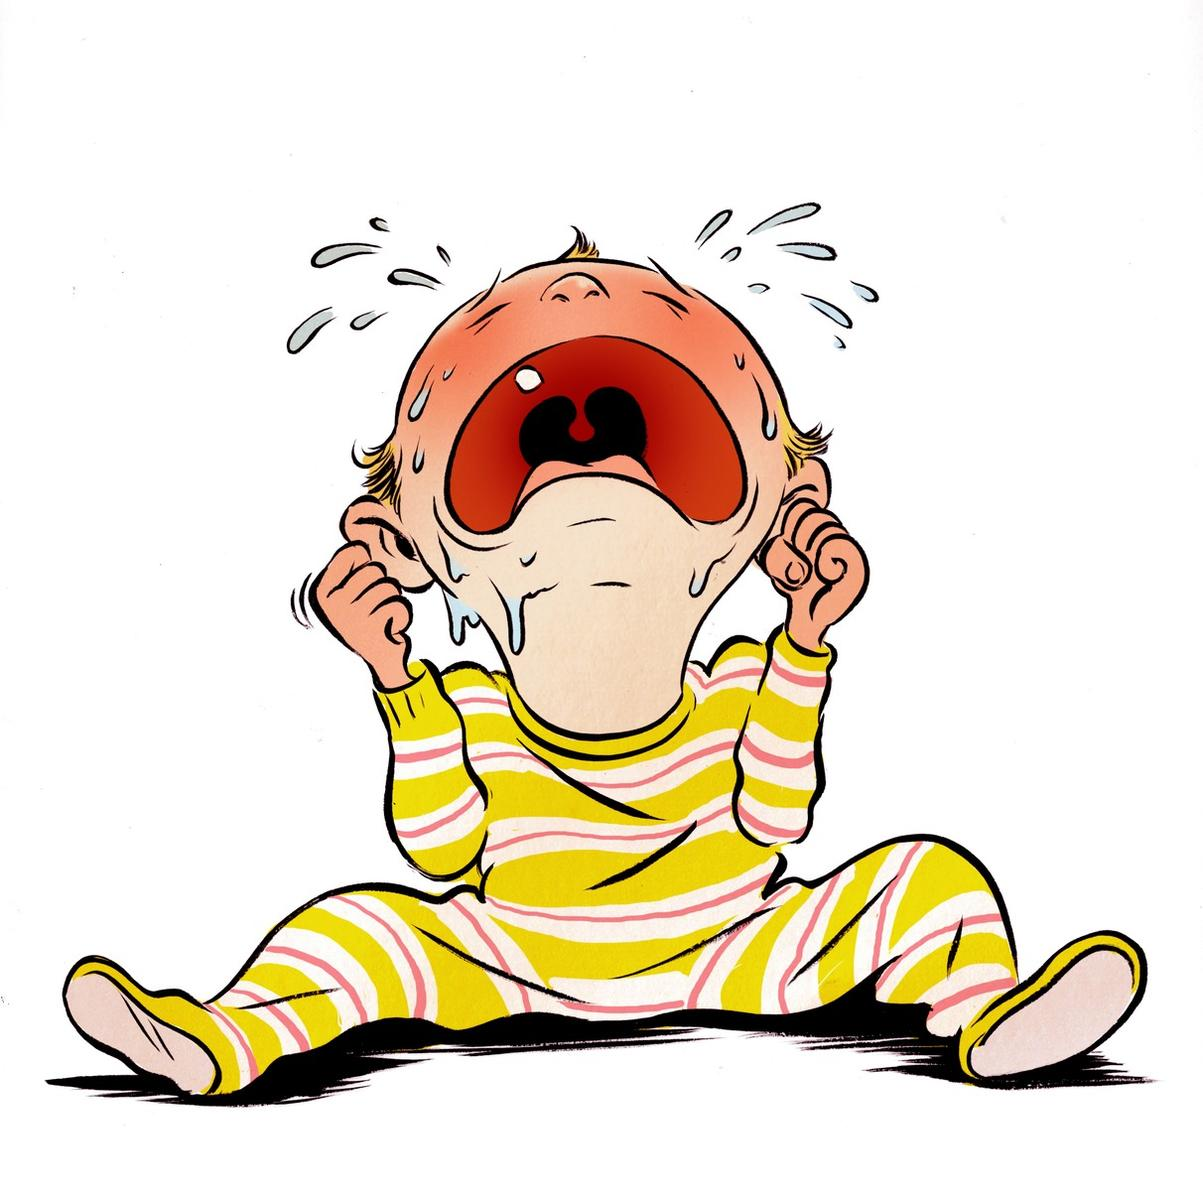 American baby magazine cartoon baby crying voltagebd Image collections